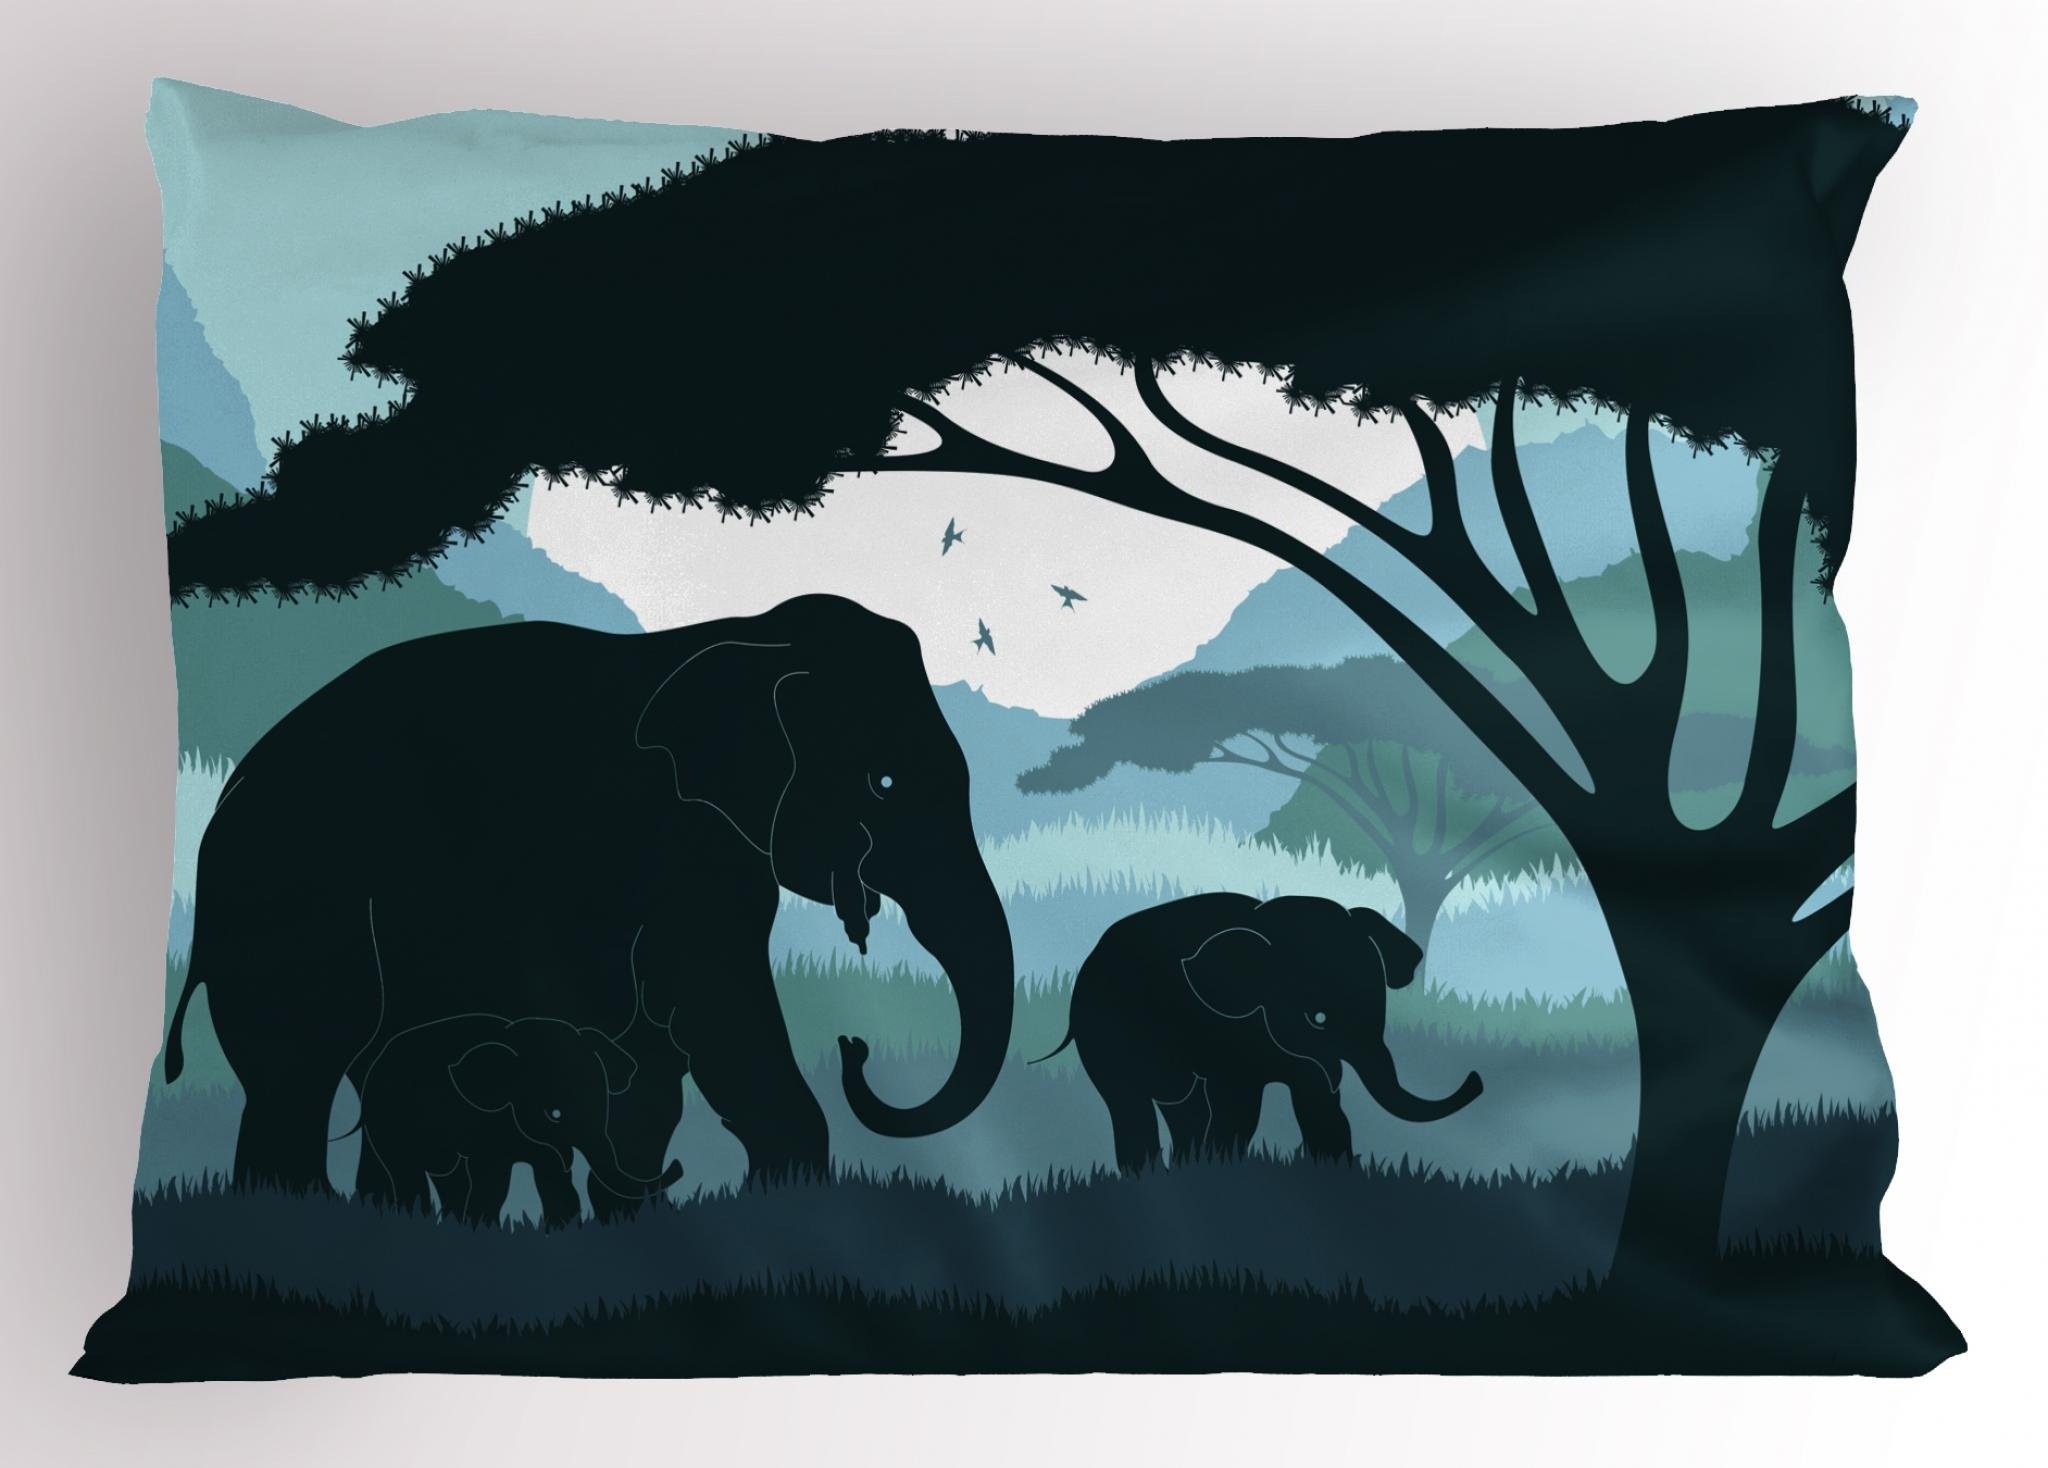 Lunarable Elephant Pillow Sham, Wild Animal Family with Mother Baby Elephants in Africa Landscape, Decorative Standard King Size Printed Pillowcase, 36 X 20 inches, Dark Blue Pale Blue White